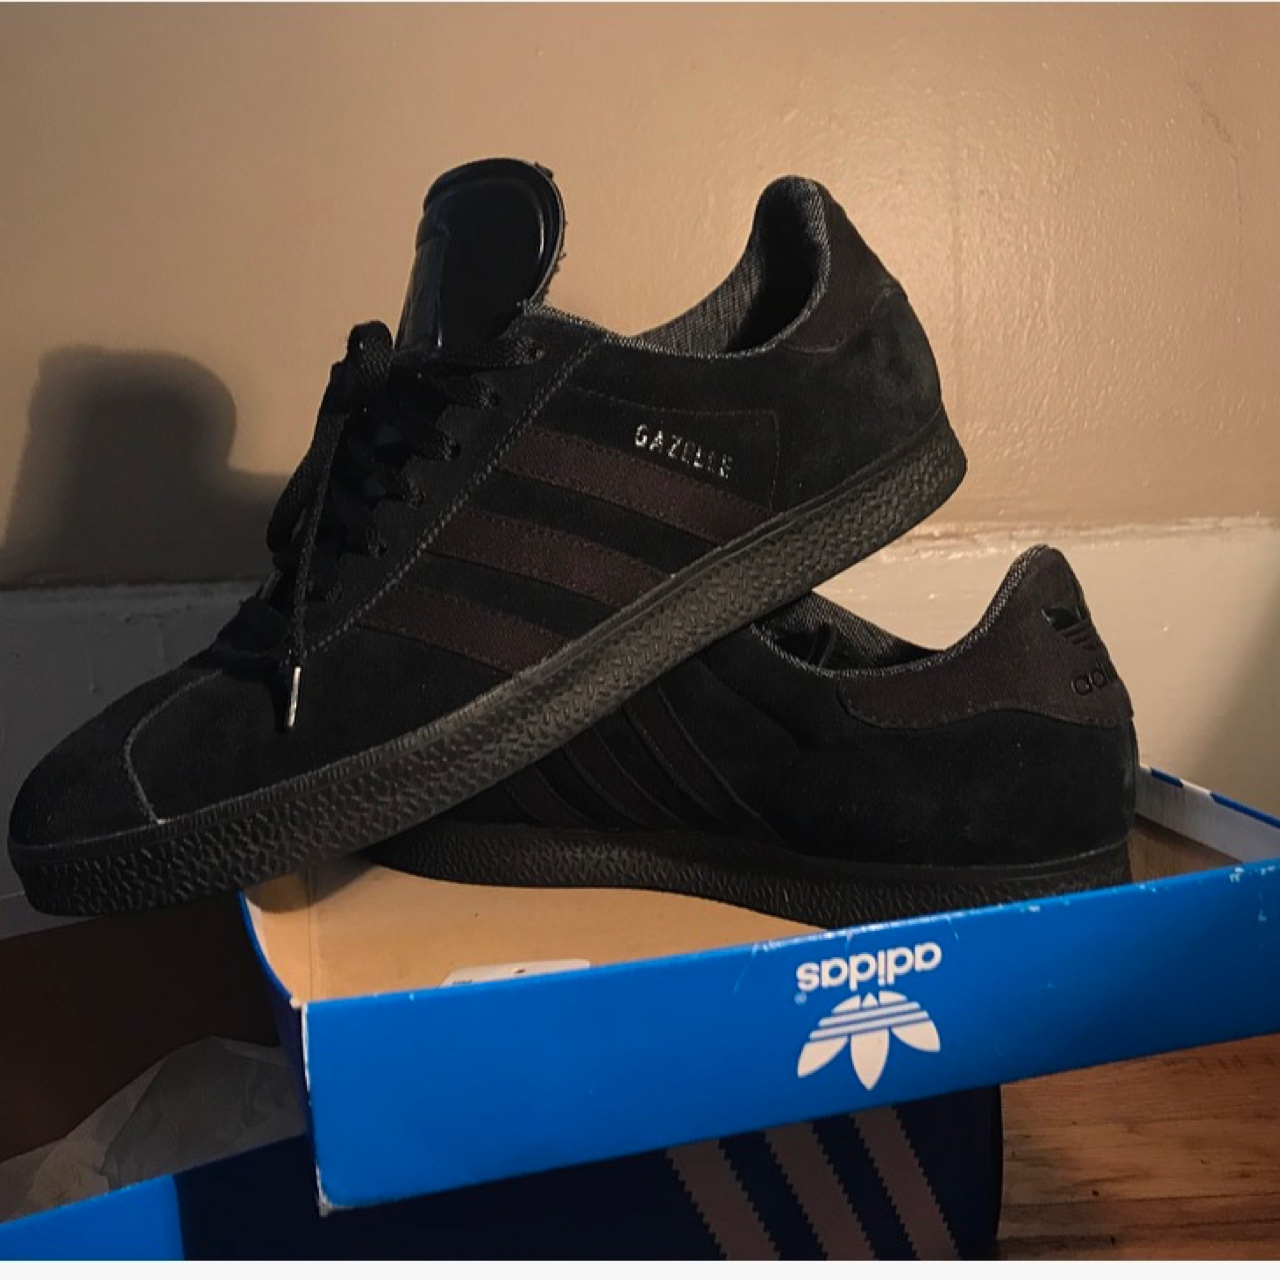 Adidas Gazelle II(Black Pack.) Like new condition. Depop